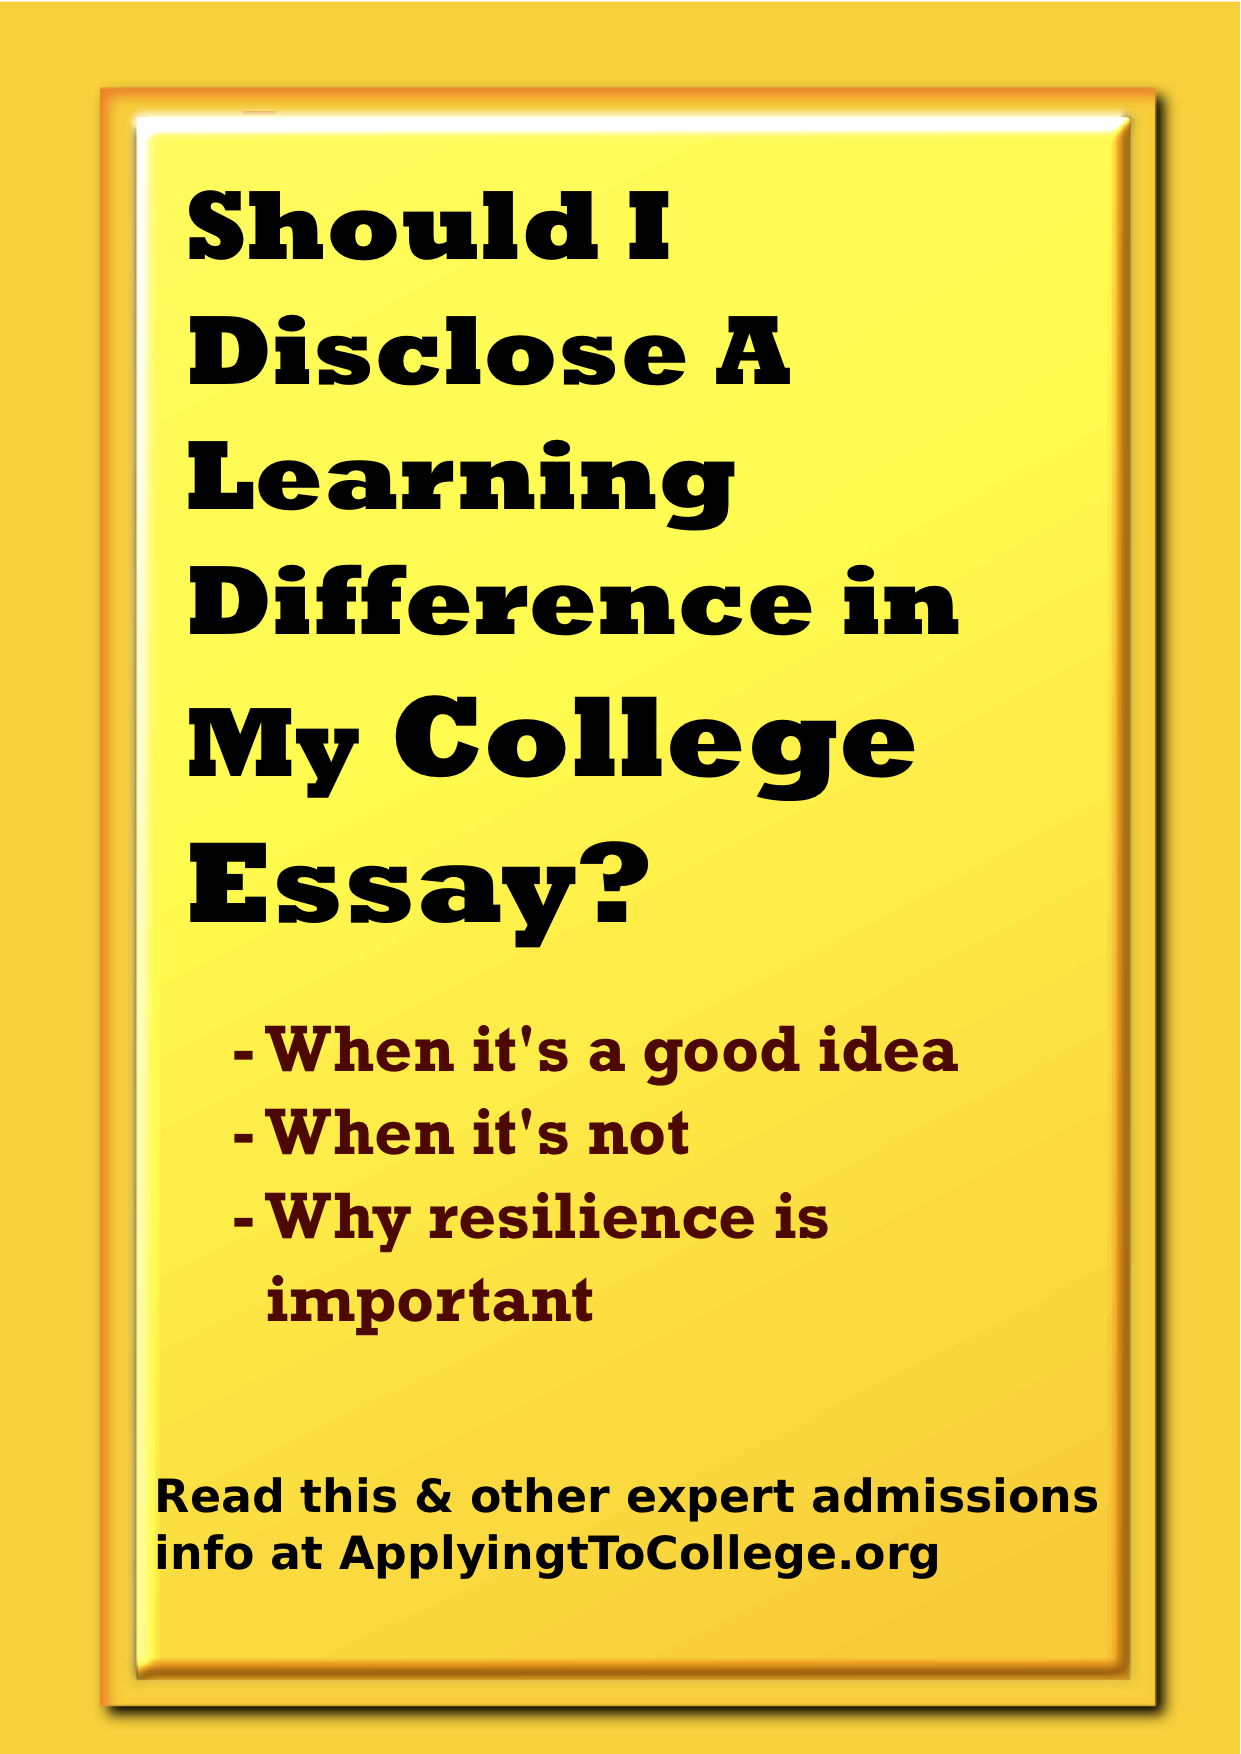 common app transfer essay prompt Some schools have prospective transfer students use the common app or the coalition application to apply in addition to the main essay, students may be required to submit a second writing sample or respond to short-answer questions , though this isn't always the case prospective students can check a.